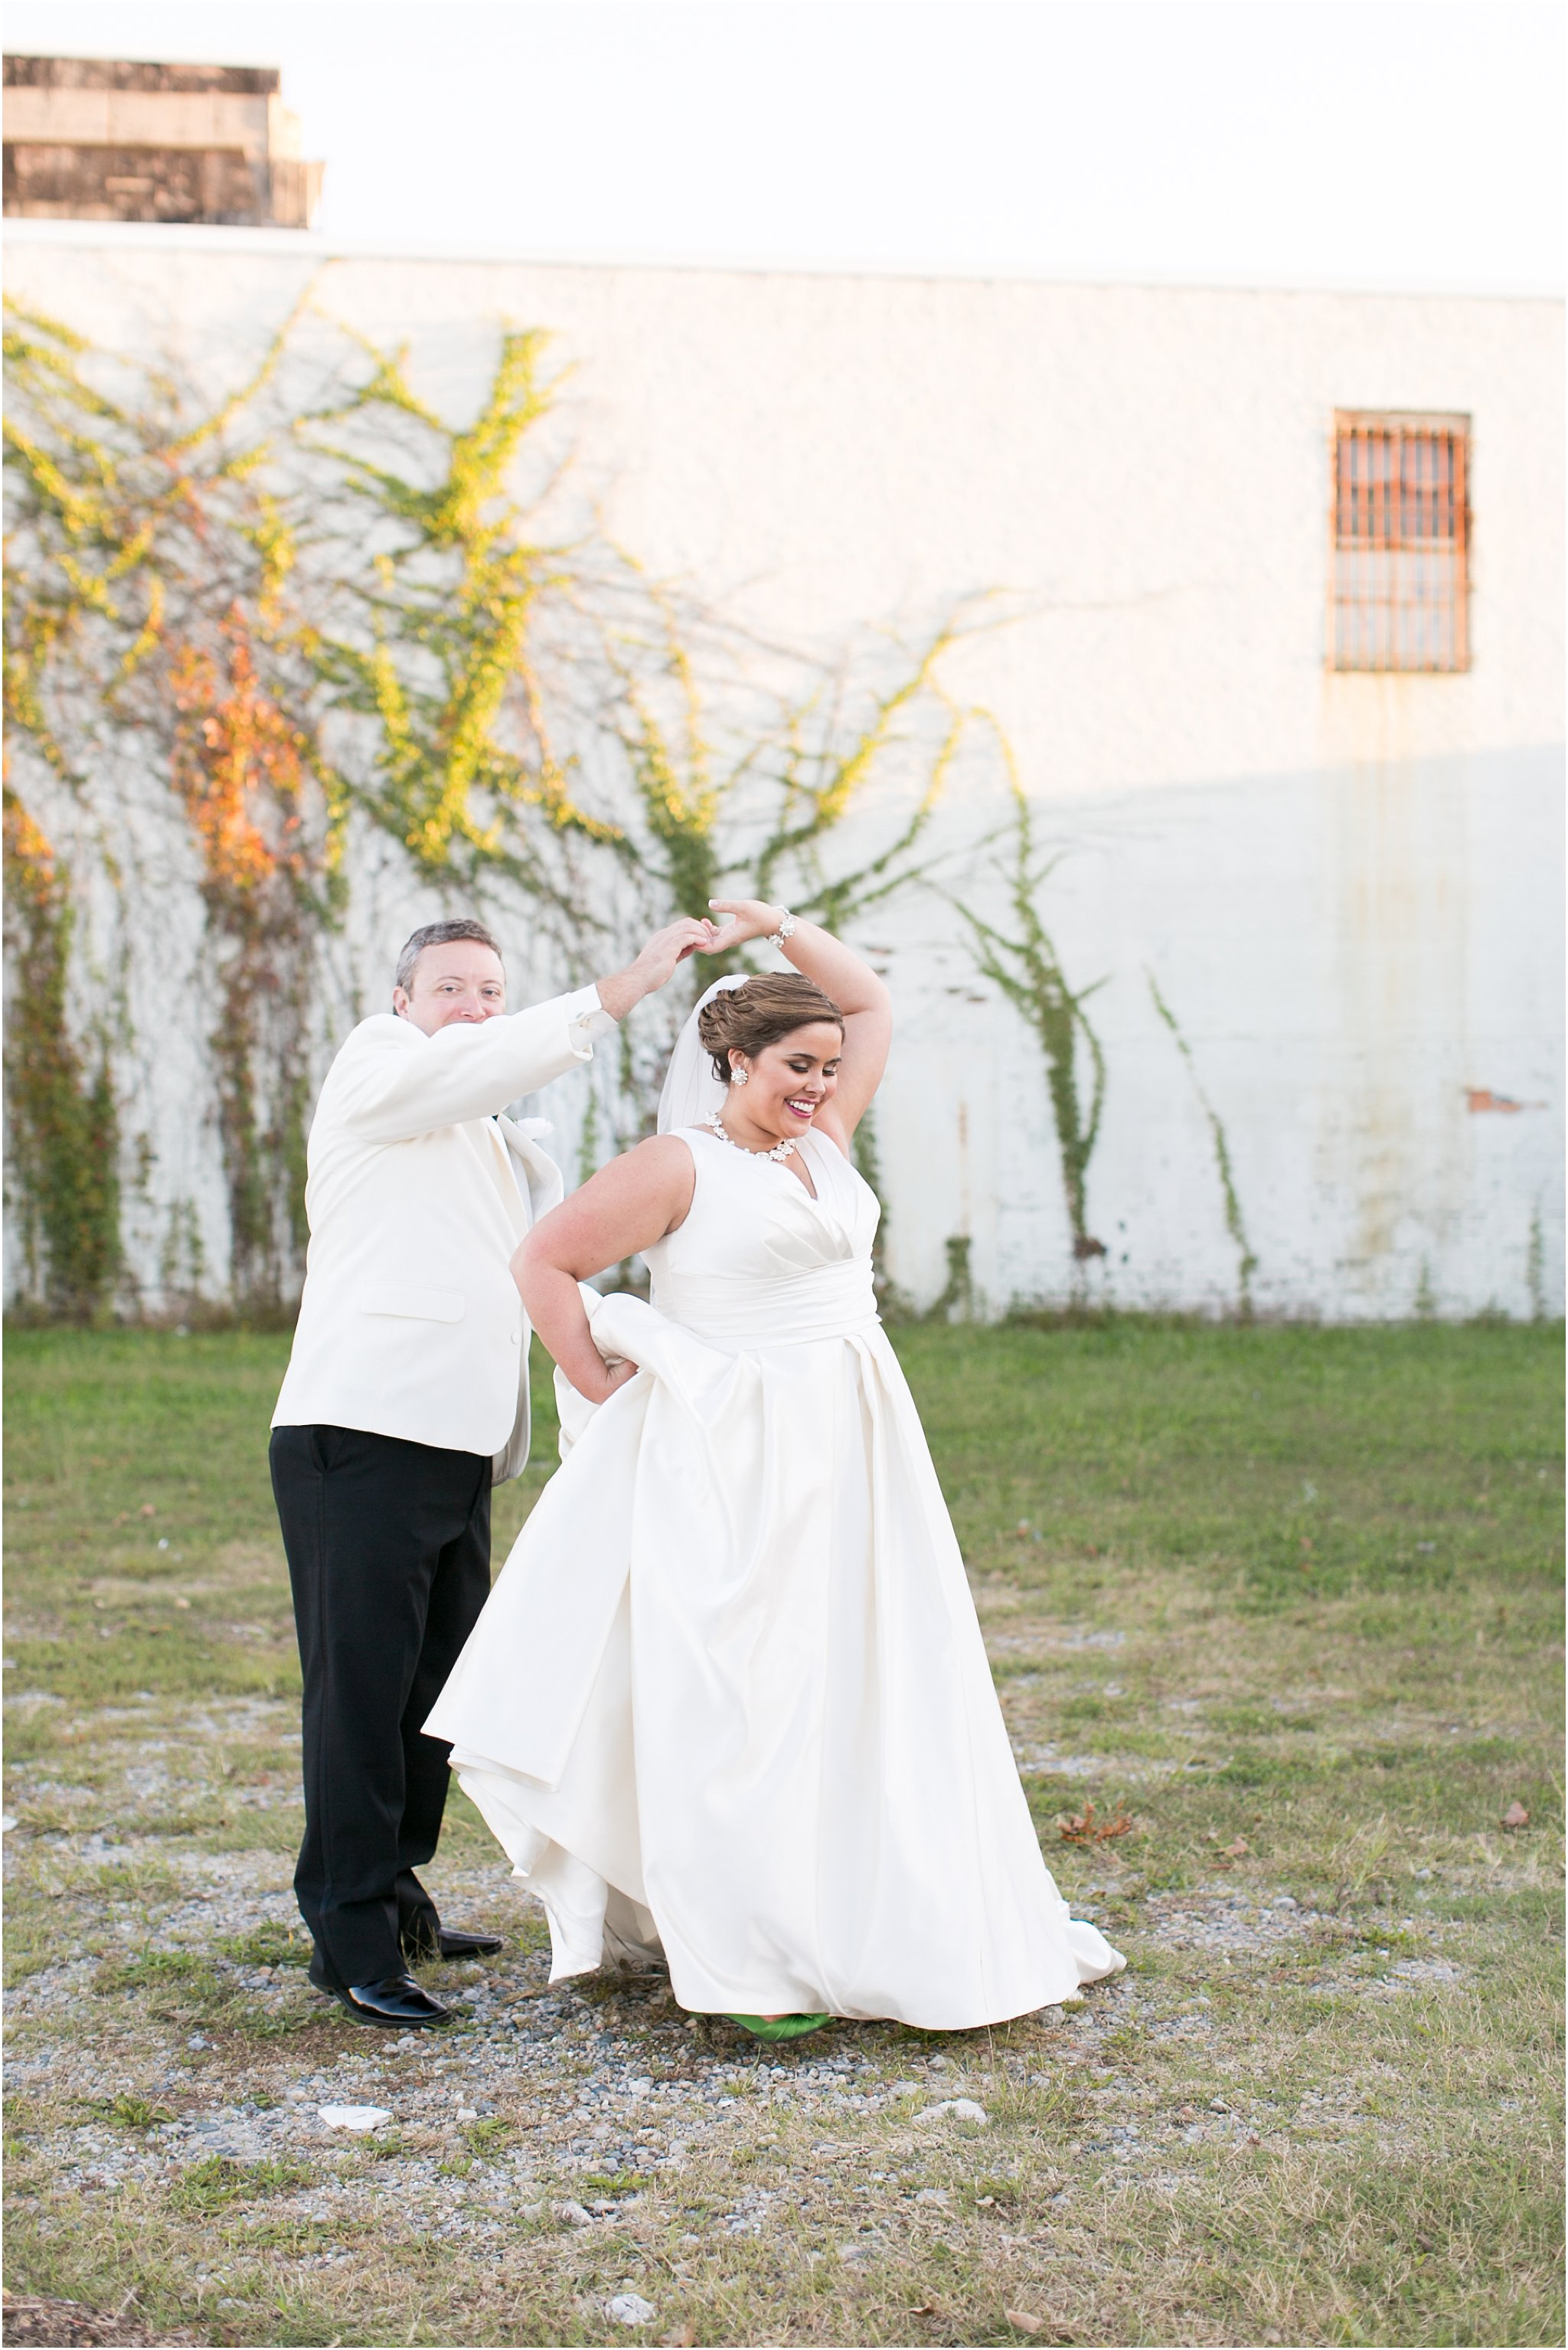 va_jessica_ryan_photography_virginia_wedding_norfolk_harrison_opera_house_norfolk_arts_district_portraits_3830